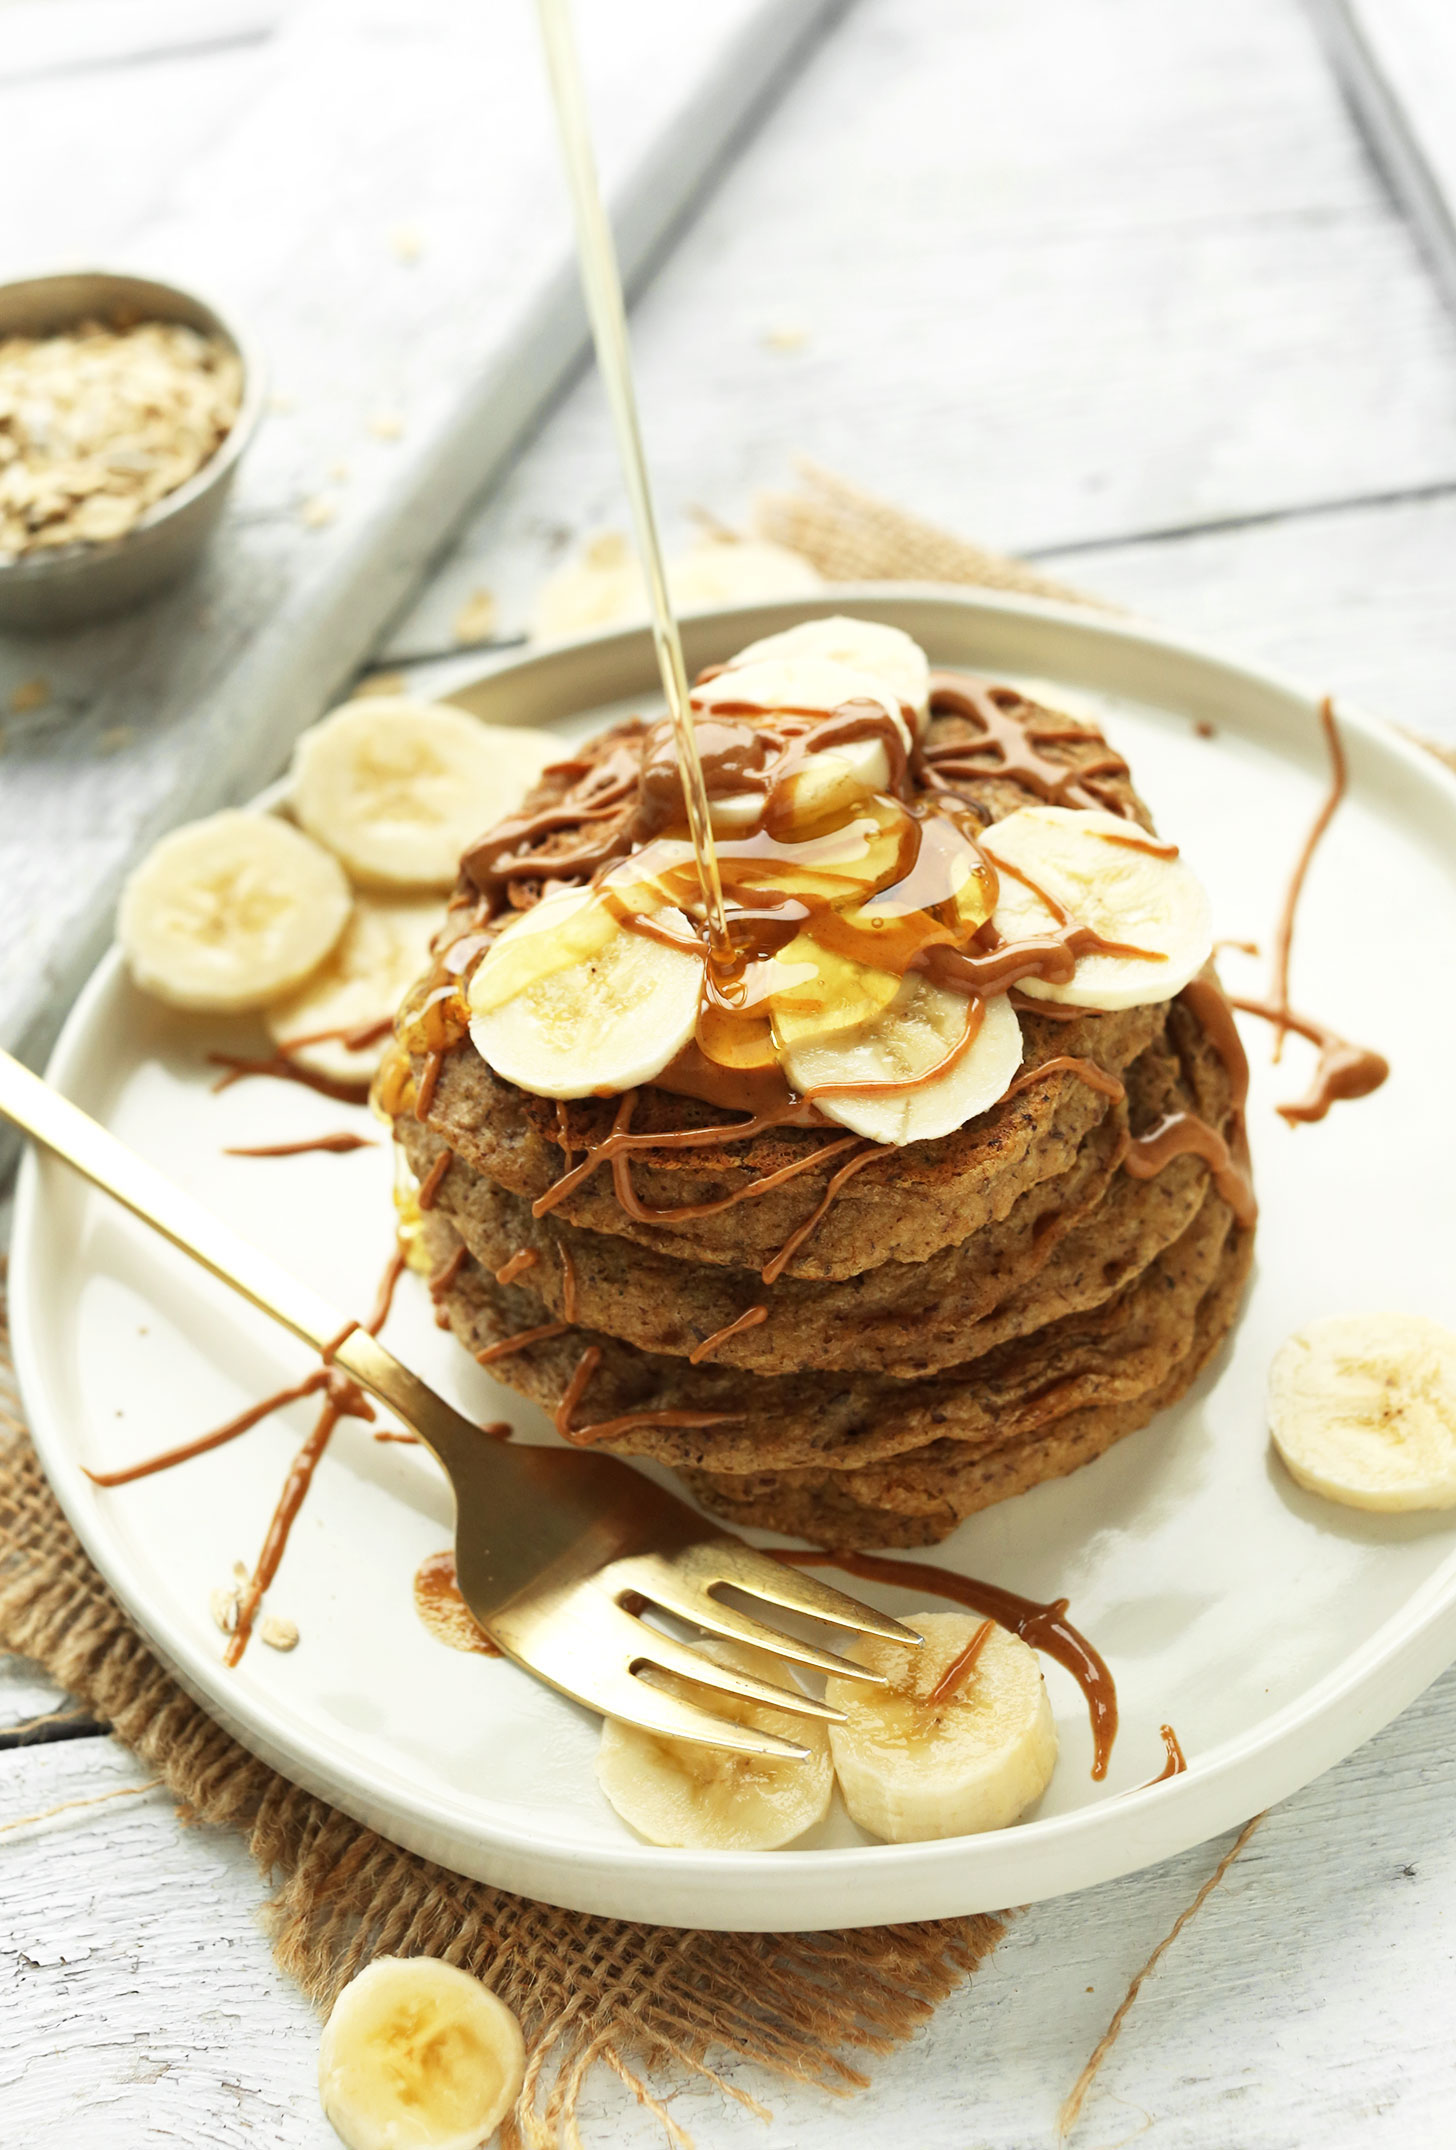 Photo of our Peanut Butter Protein Pancakes that was distributed as a recipe freebie in our newsletter